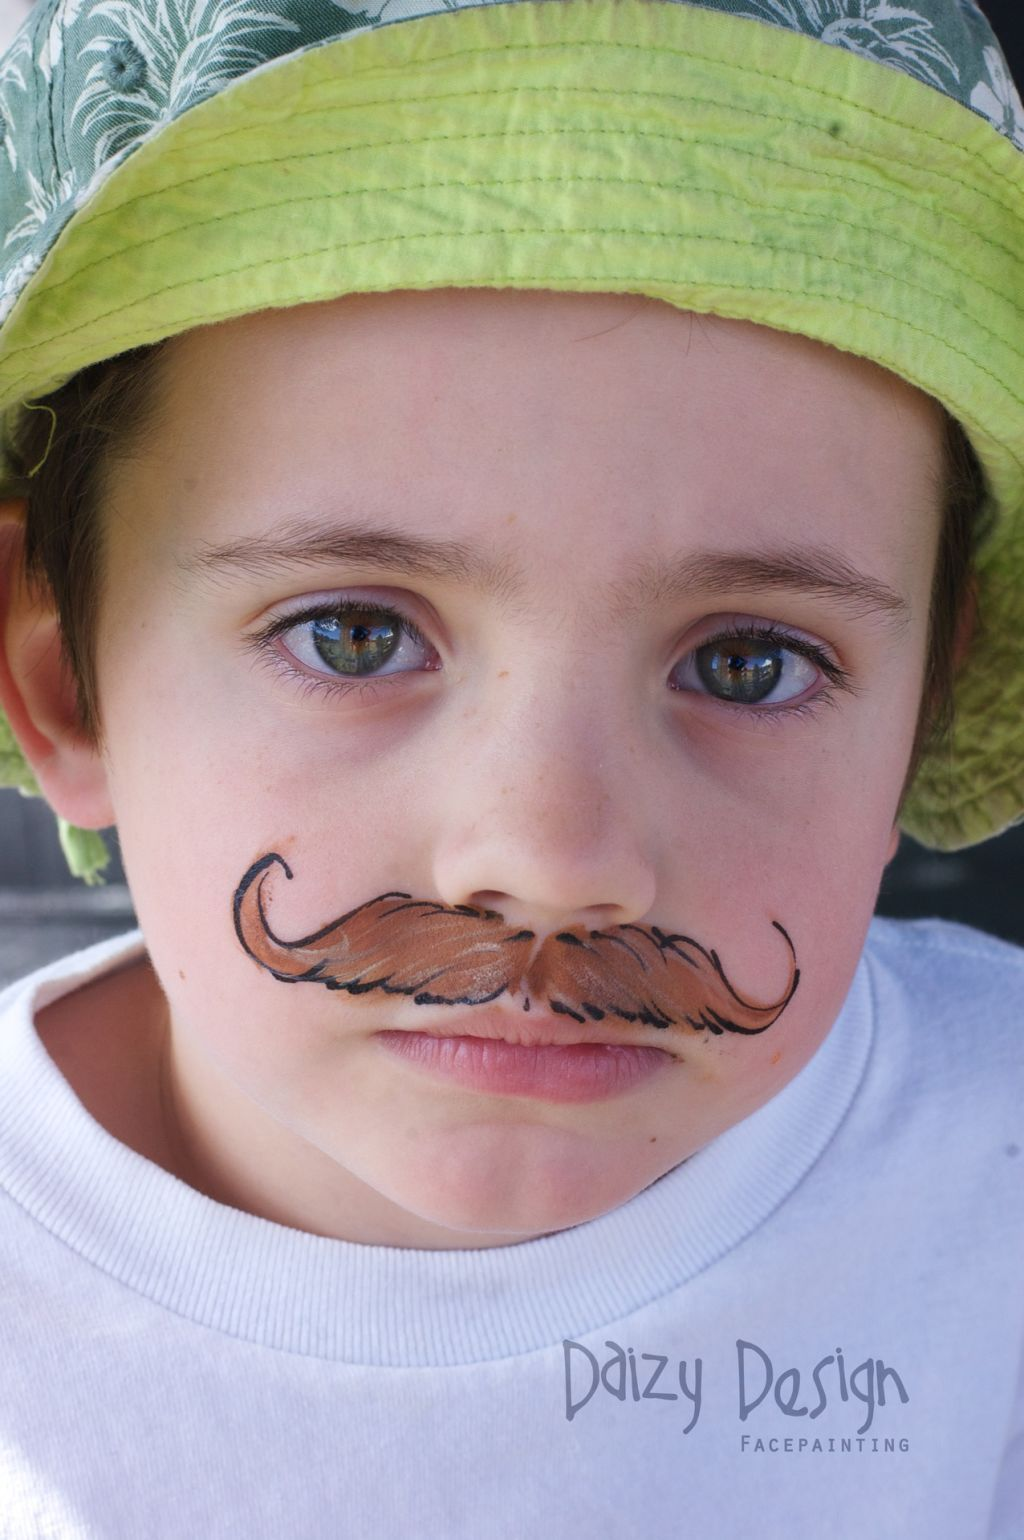 Small Face Painting Ideas 3 Jpg 1024 1540 Kids Face Paint Face Painting Halloween Face Painting For Boys